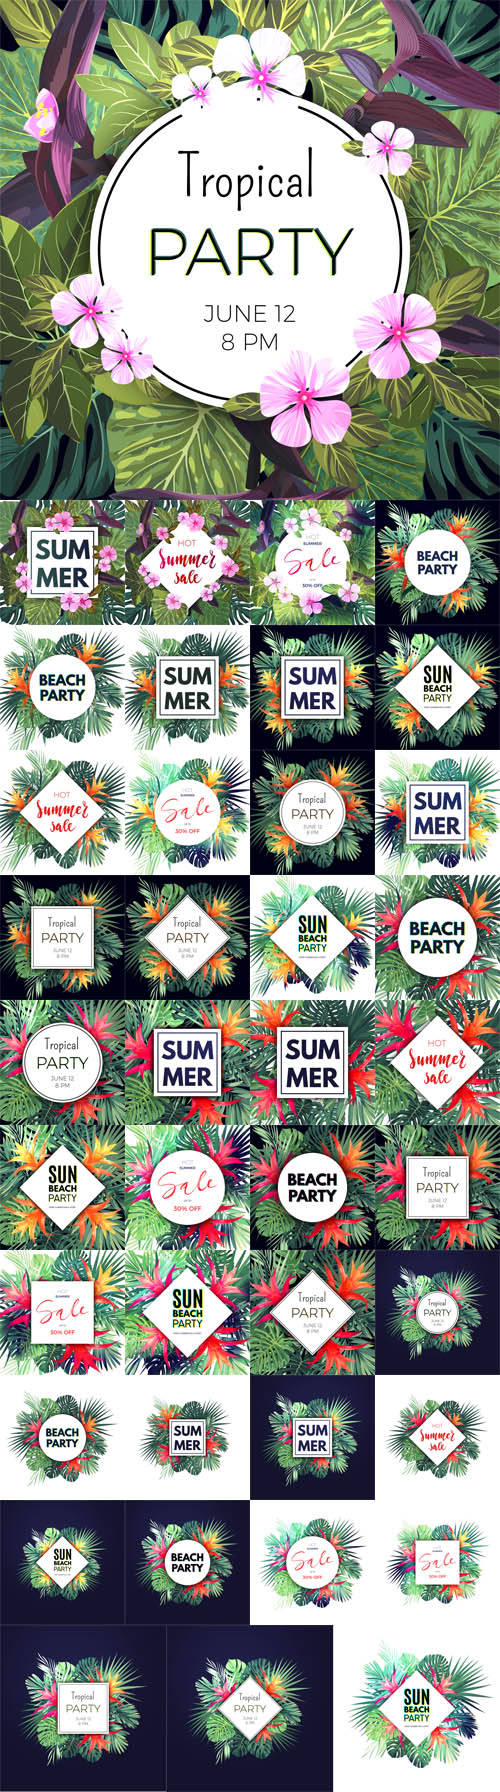 Vector Summer Hawaiian Flyers Design with Green Tropical Plants and Palm Leaves 2